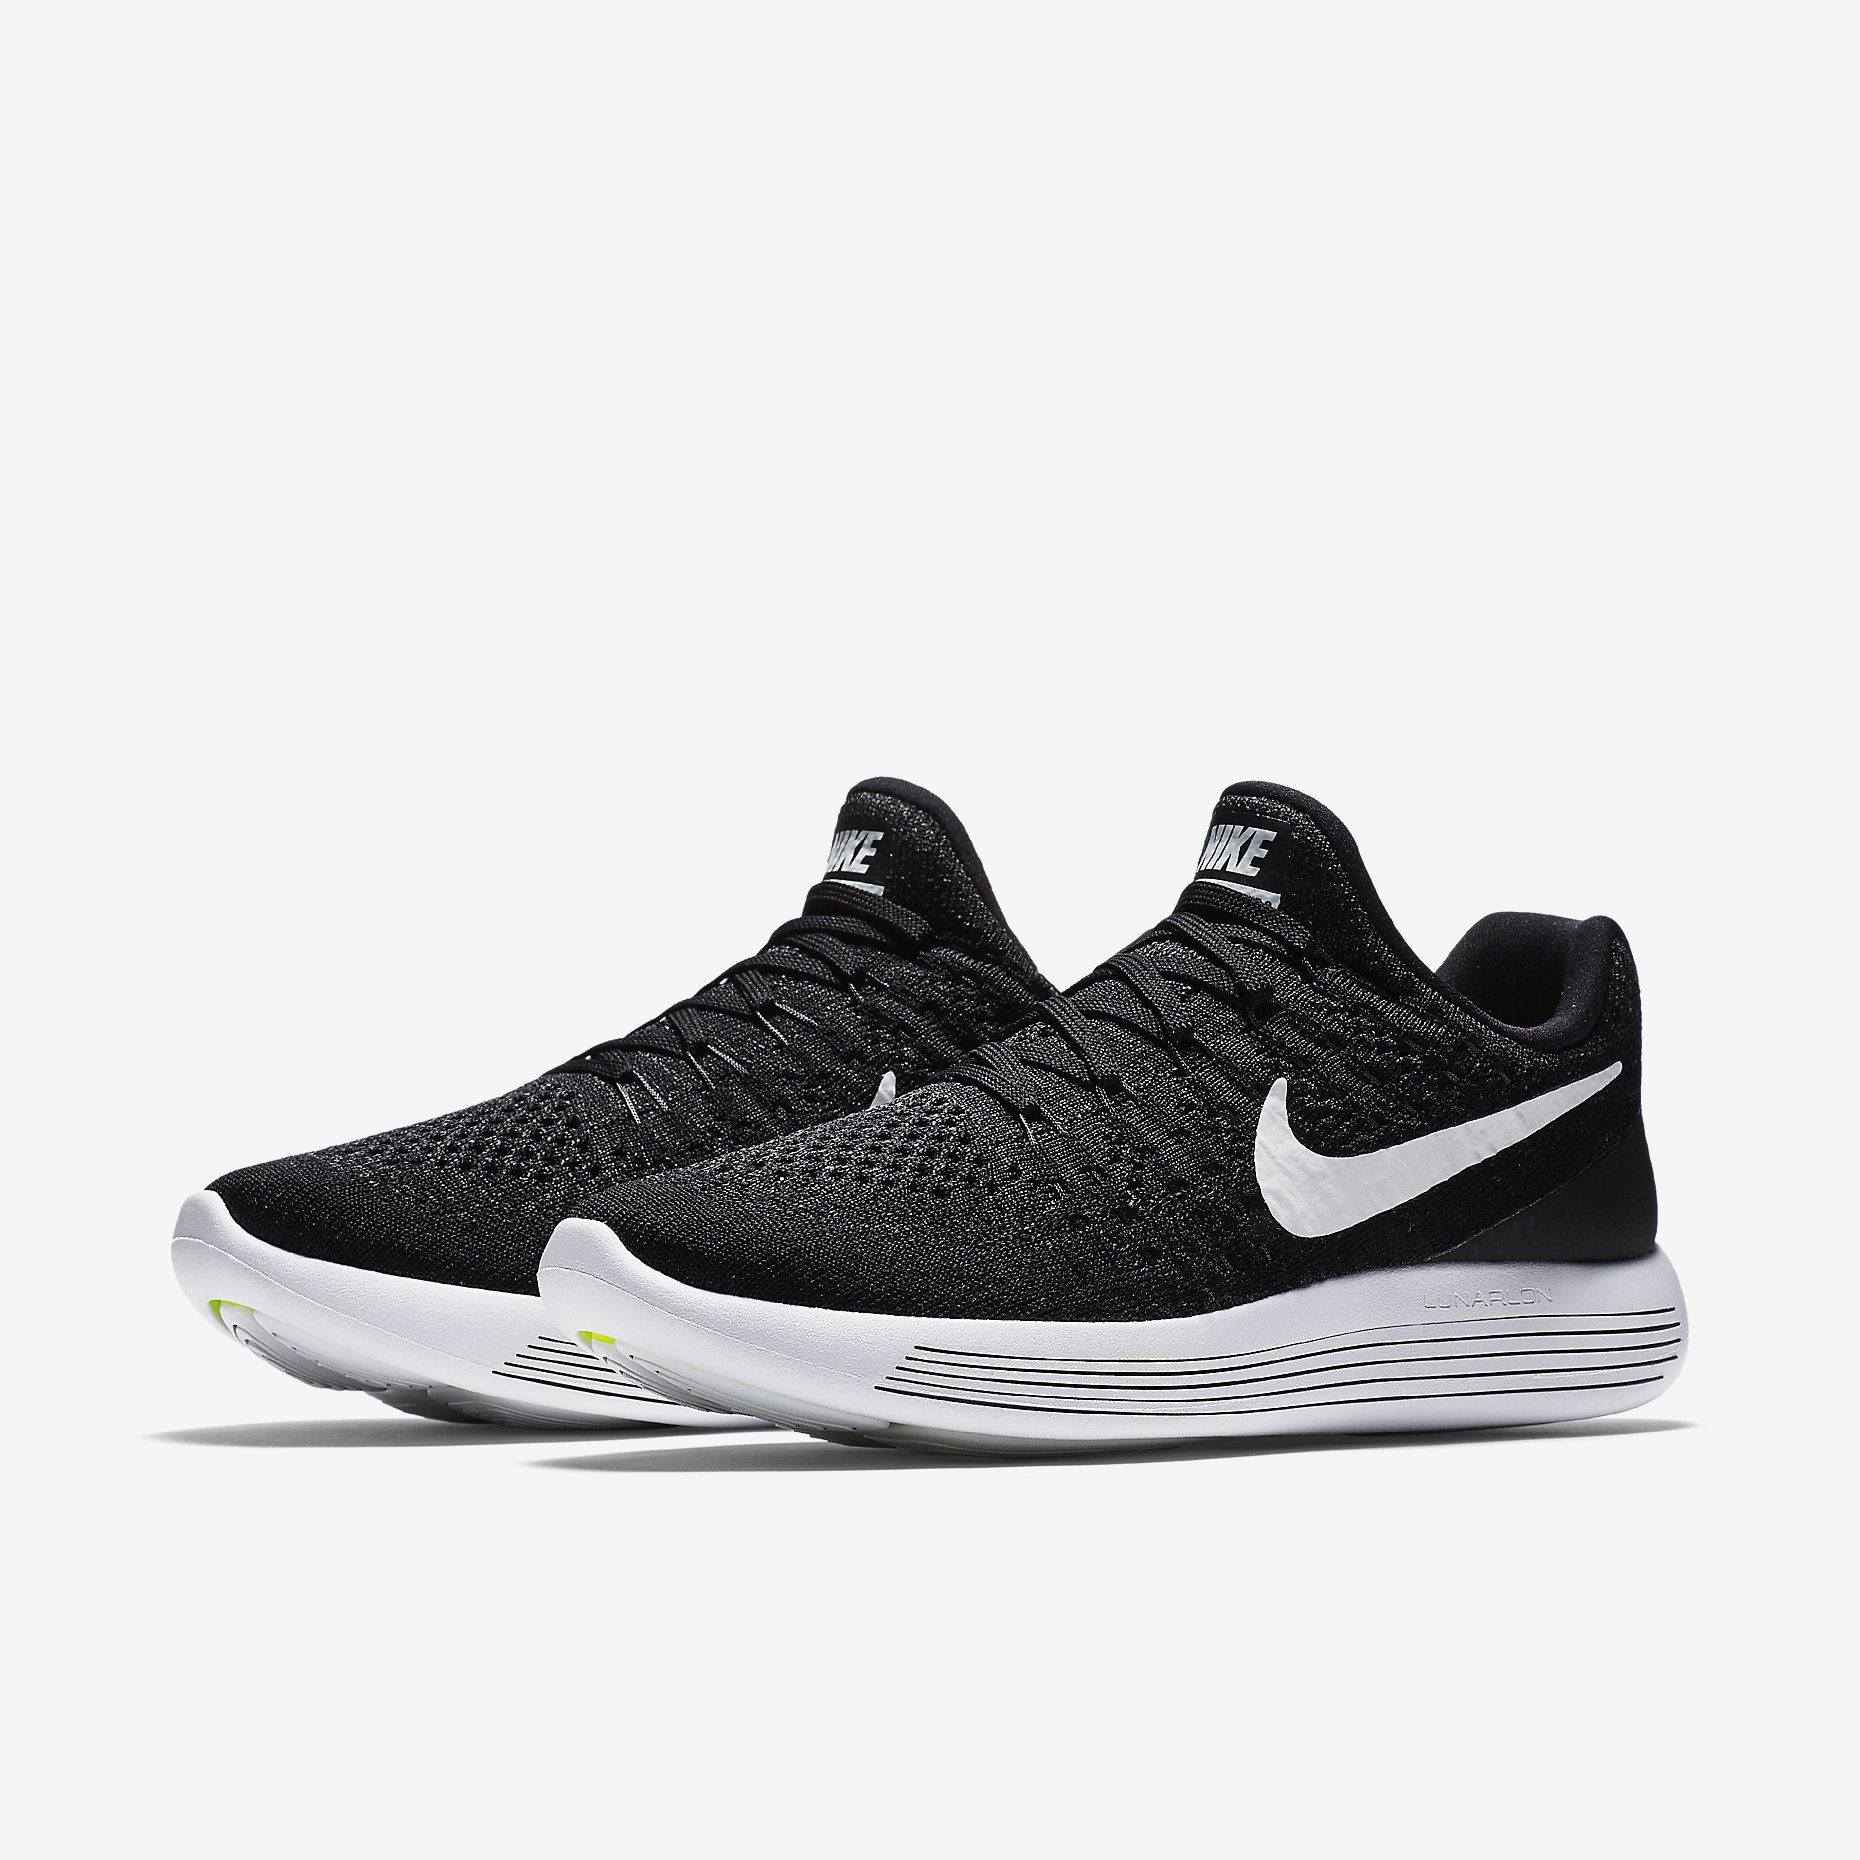 the best attitude 8d91f 39f13 Nike LunarEpic Low FlyKnit 2 Womens Running Shoes